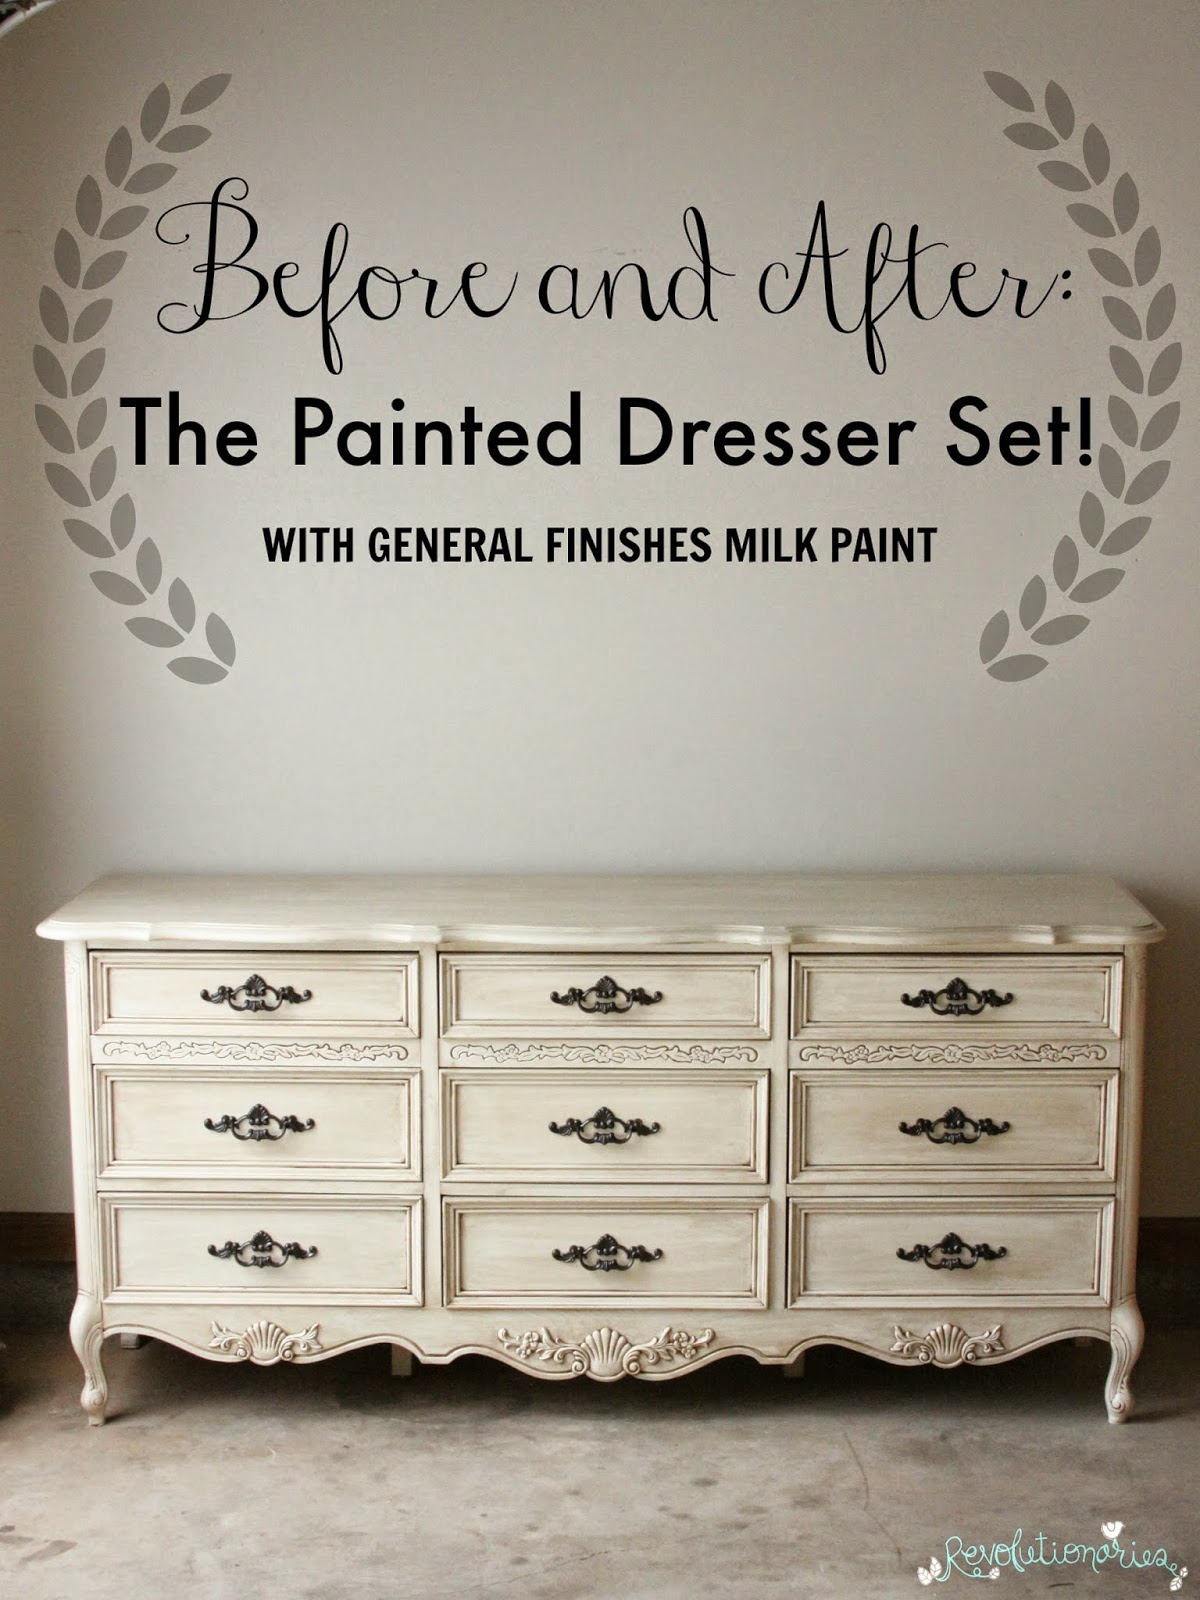 Before and After: The Painted Dresser Set!